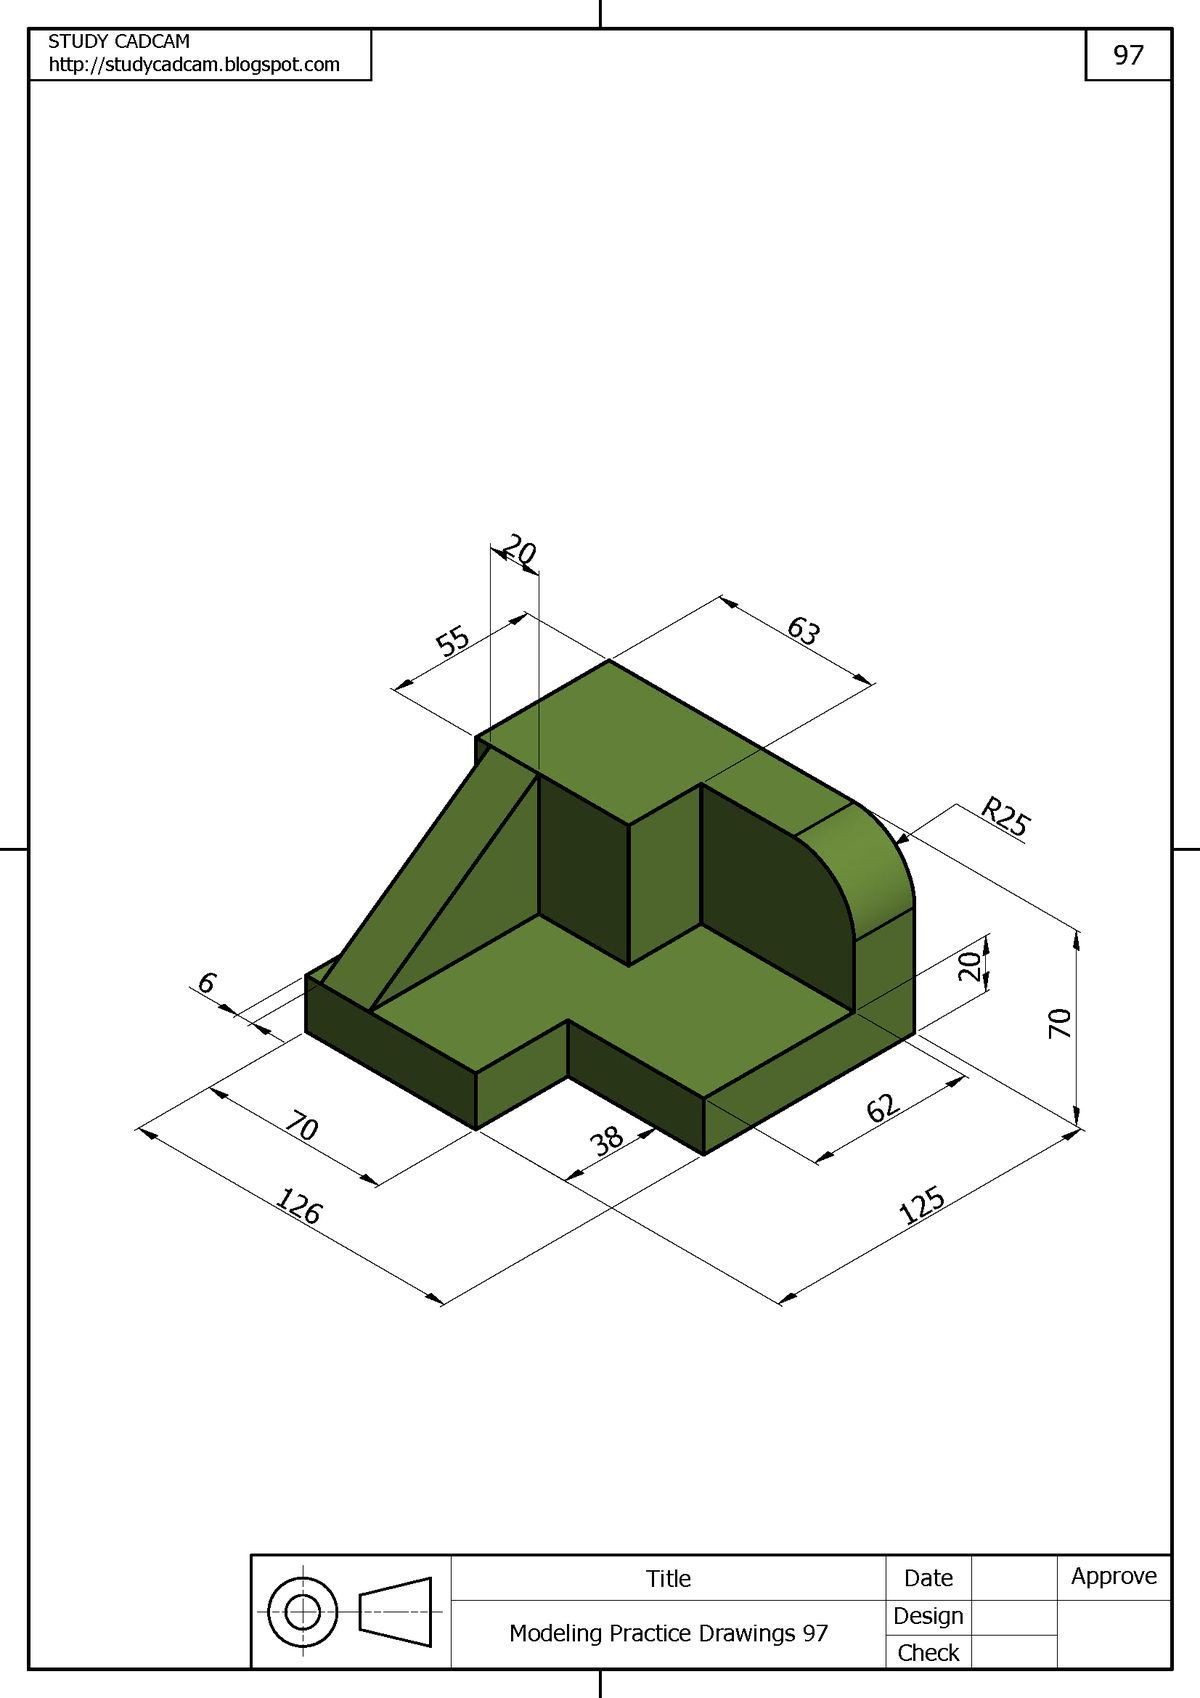 Math Aids Compound Shapes Pin On My Fun with Blender 3d software